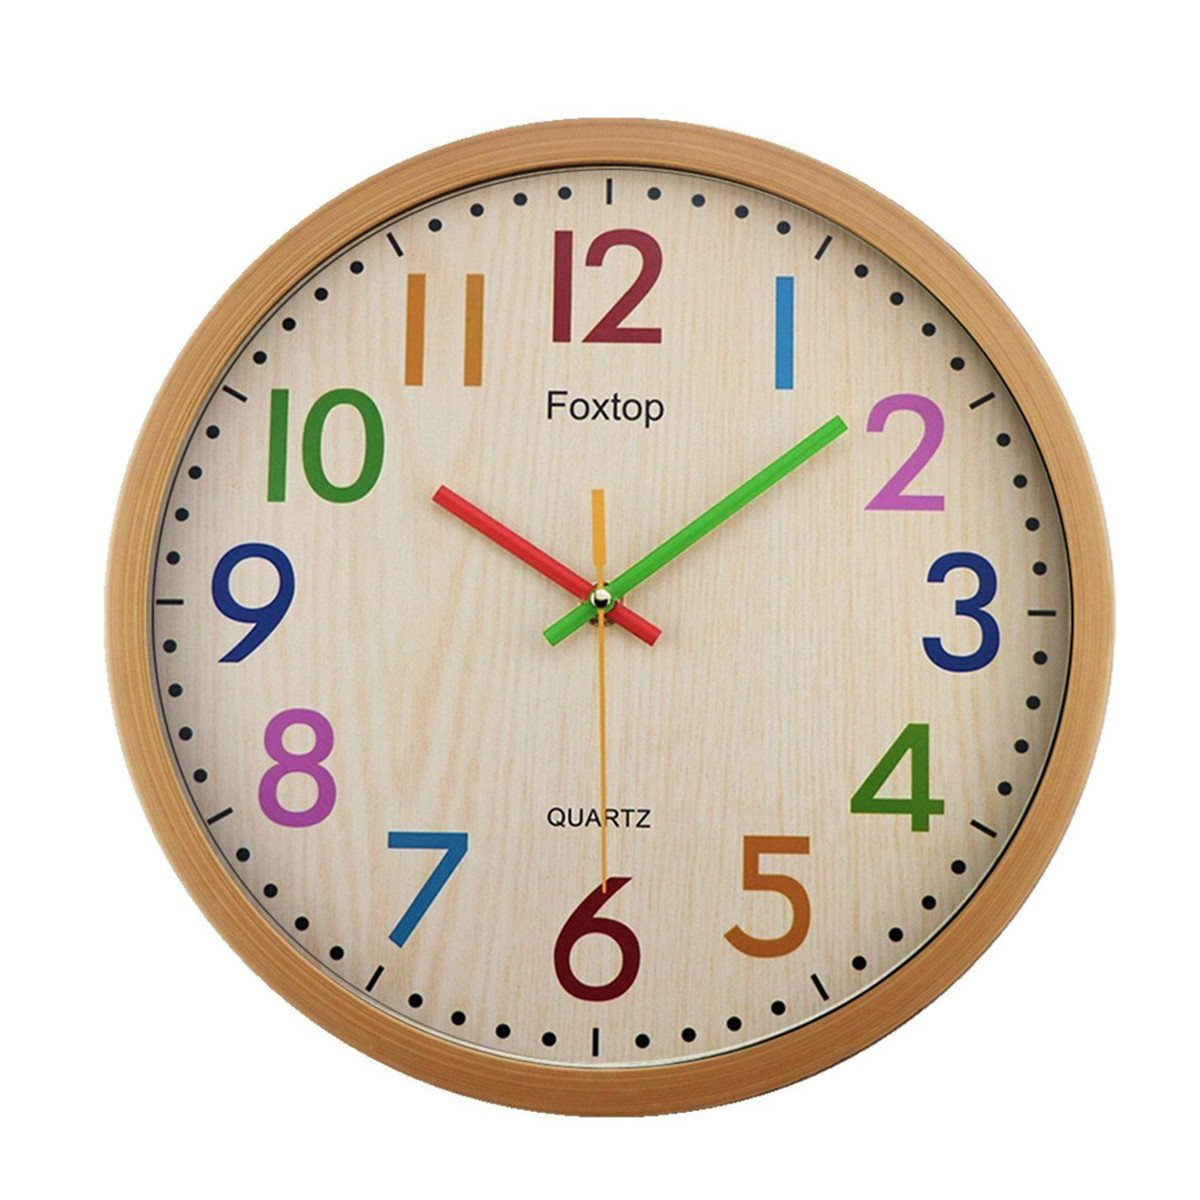 Foxtop Large Silent Non-ticking Decorative Colorful Kids Wall Clock Battery Operated for Living Room Bedroom School Classroom Child Gifts 12.5 Inch - Easy To Read